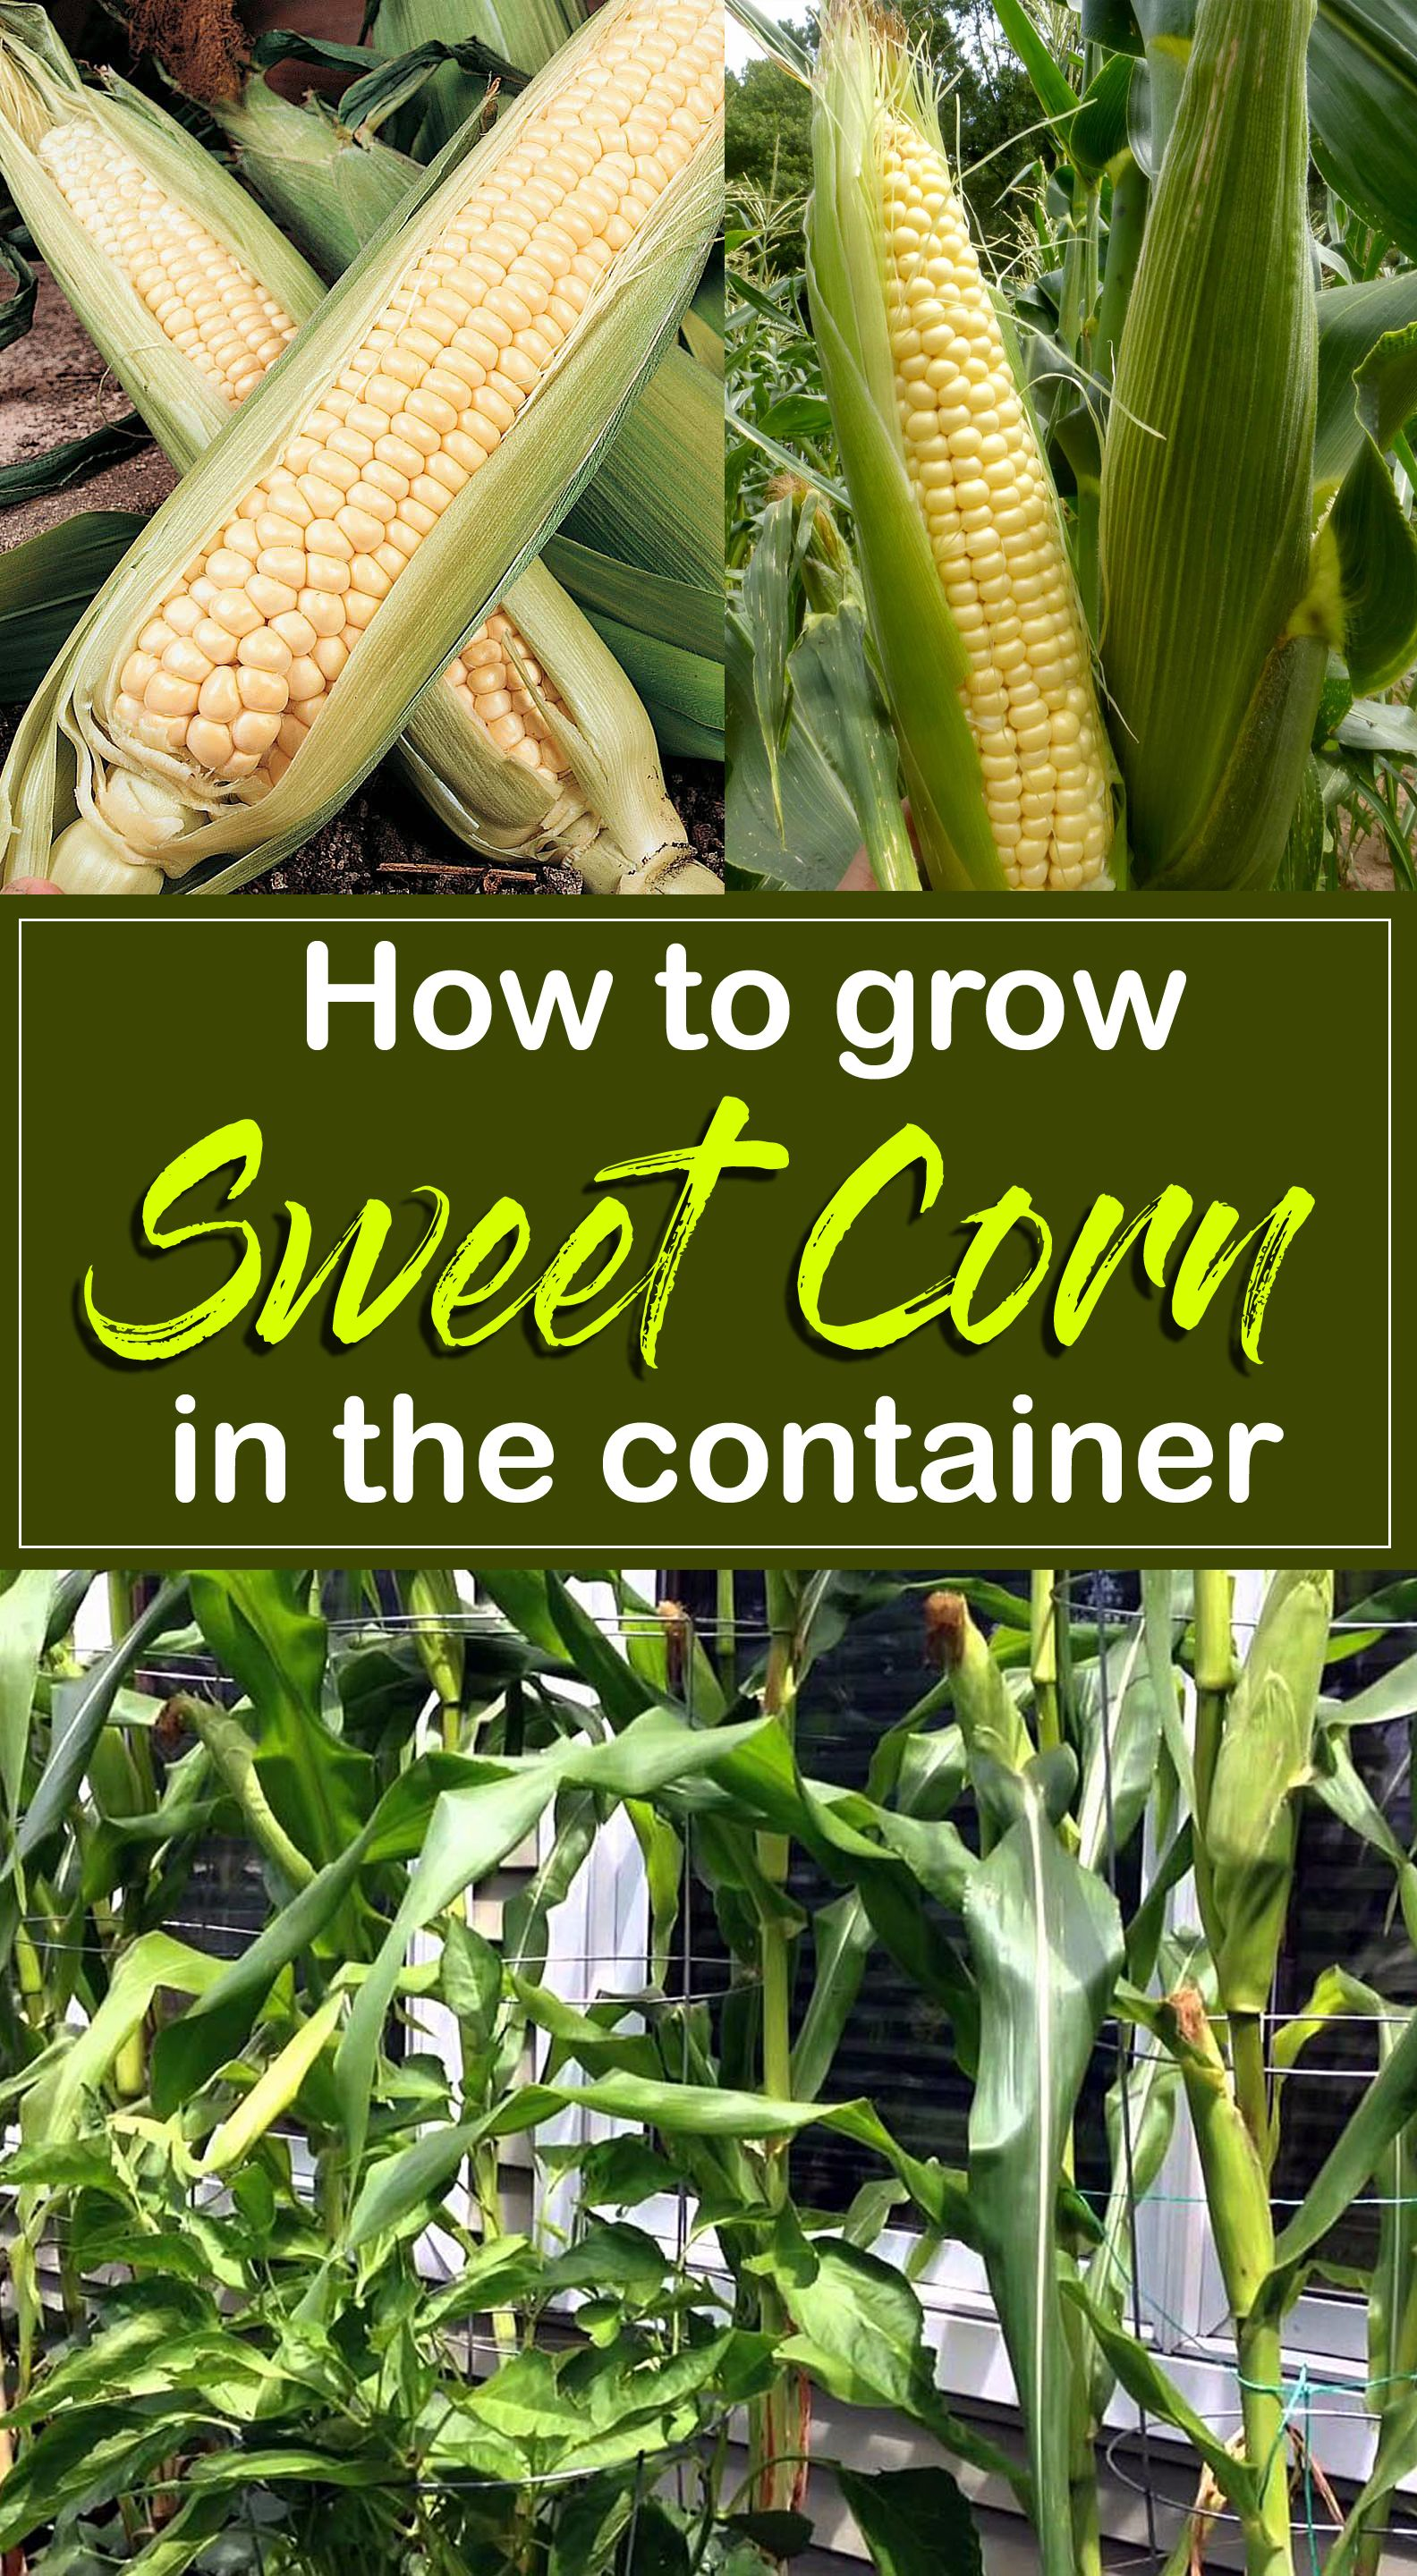 How to grow Sweet Corn in the container | sweet corn growing in the container - Nature Bring